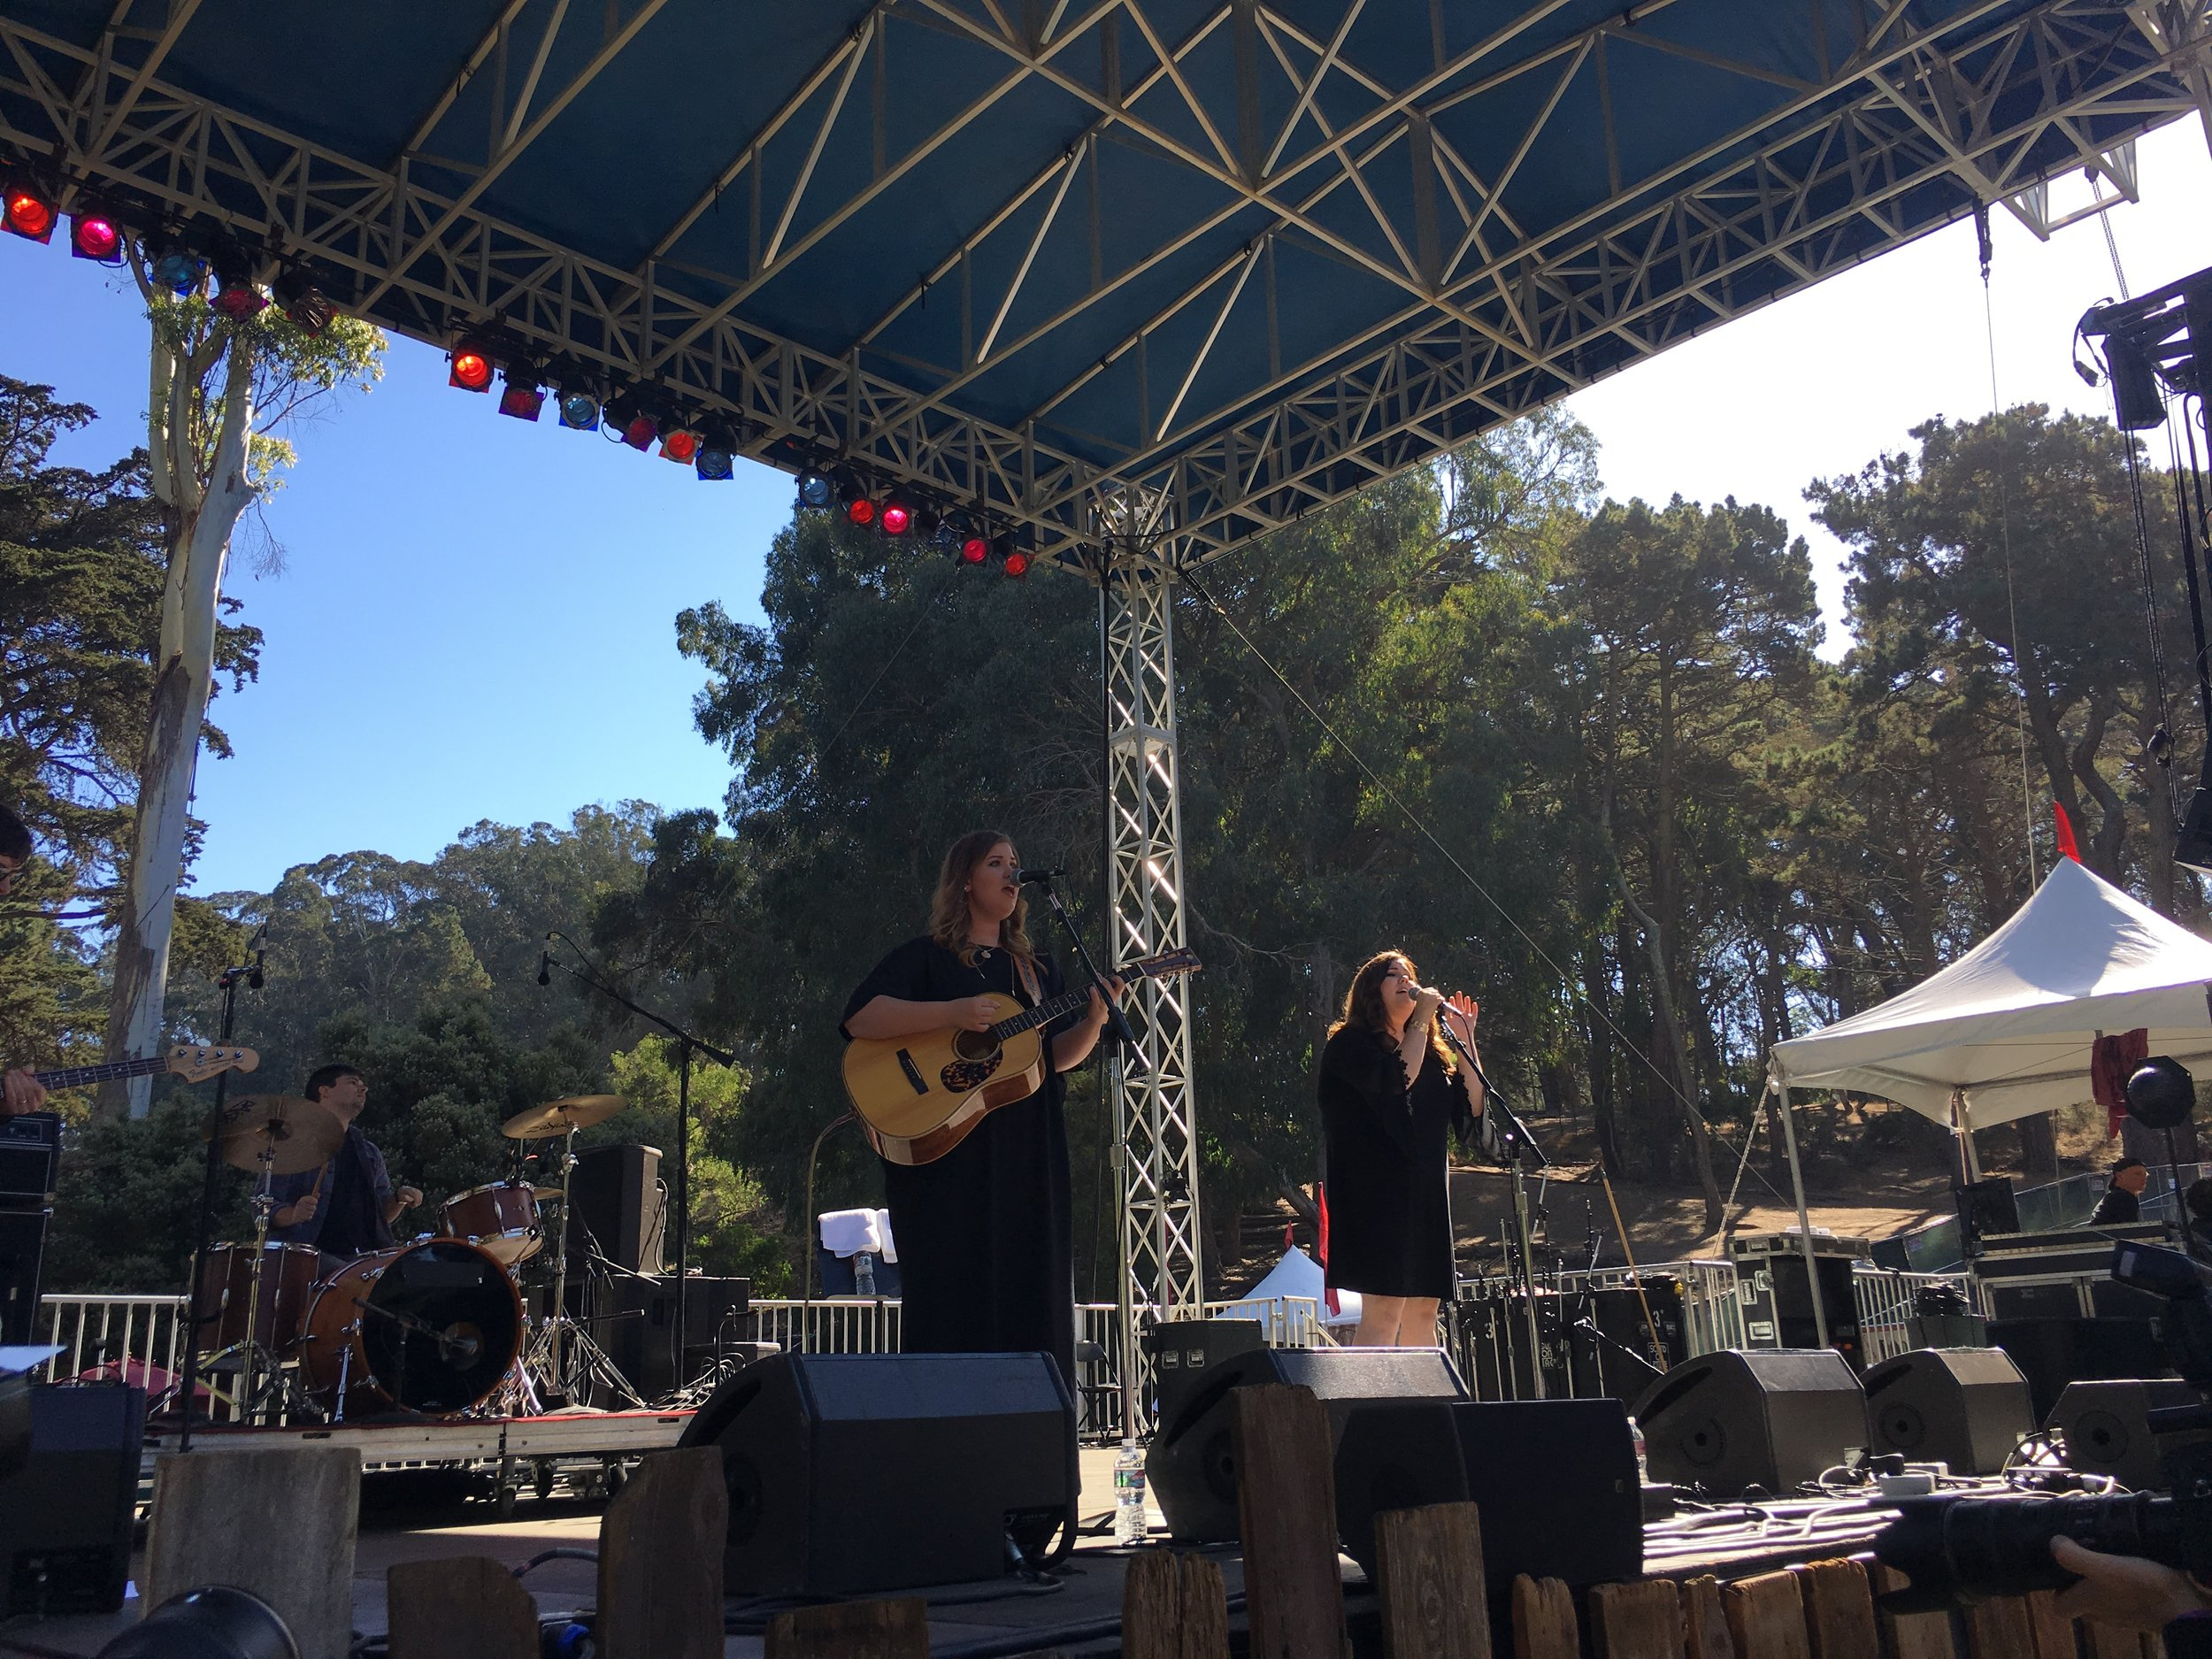 The Secret Sisters had some incredible scenery for their set at Hardly Strictly Bluegrass in San Francisco, CA